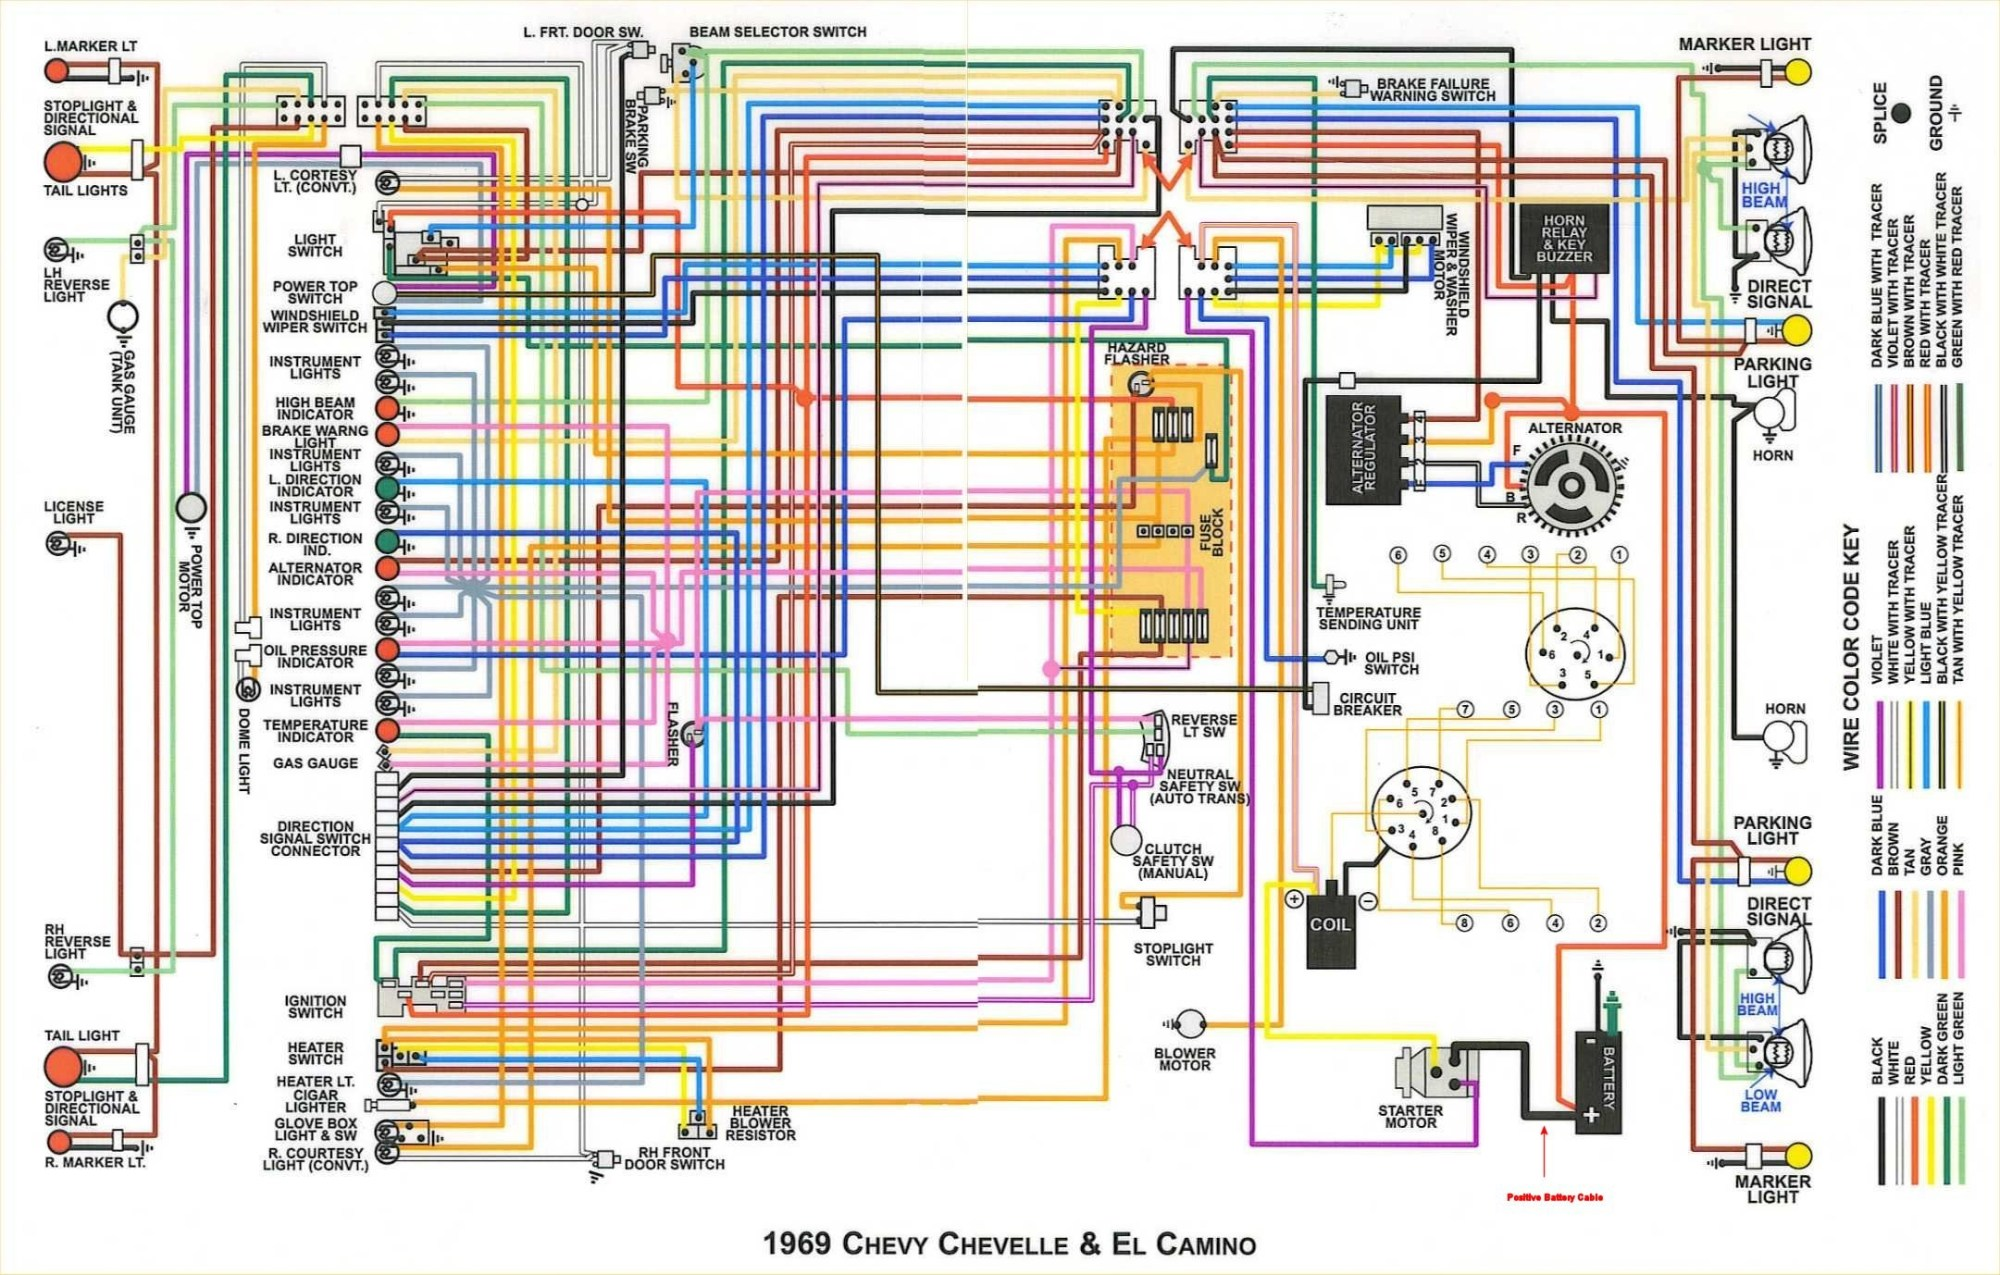 hight resolution of 1966 chevelle wiring diagram schema wiring diagram 1966 chevelle wiring harness wiring diagram centre 1966 chevelle